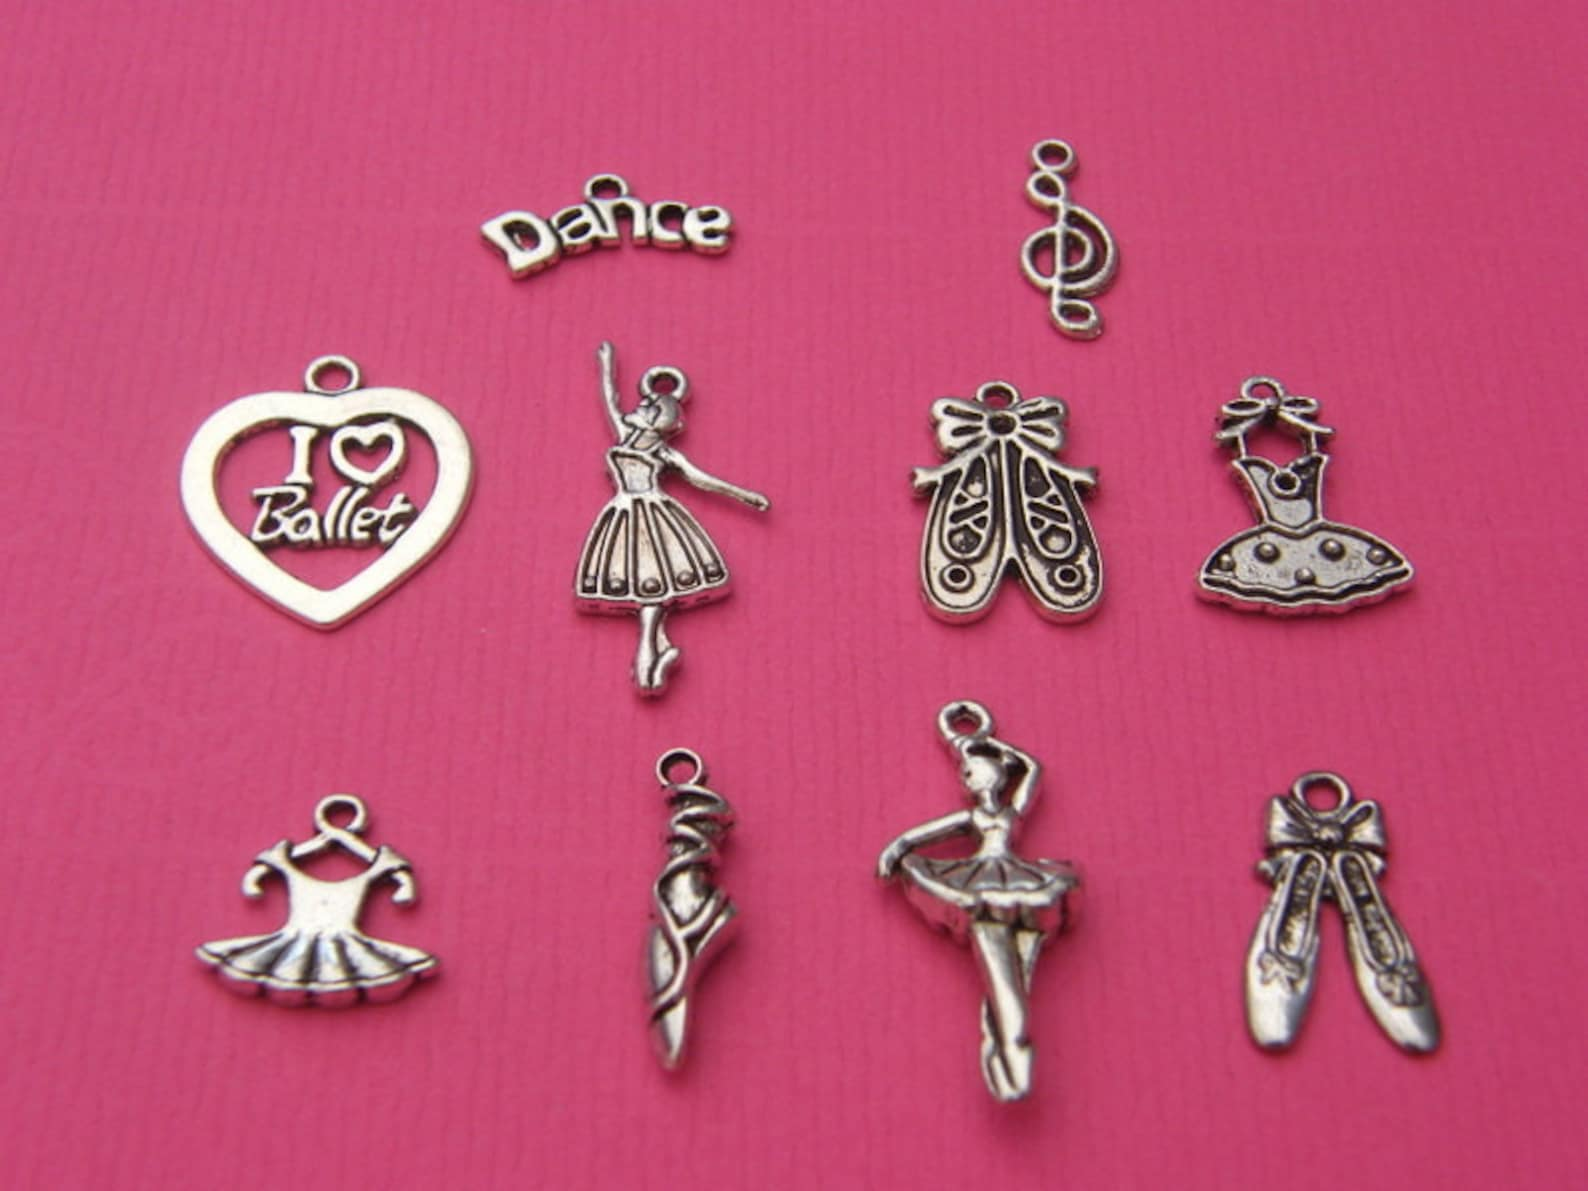 the ballet charms collection - 10 different antique silver tone charms